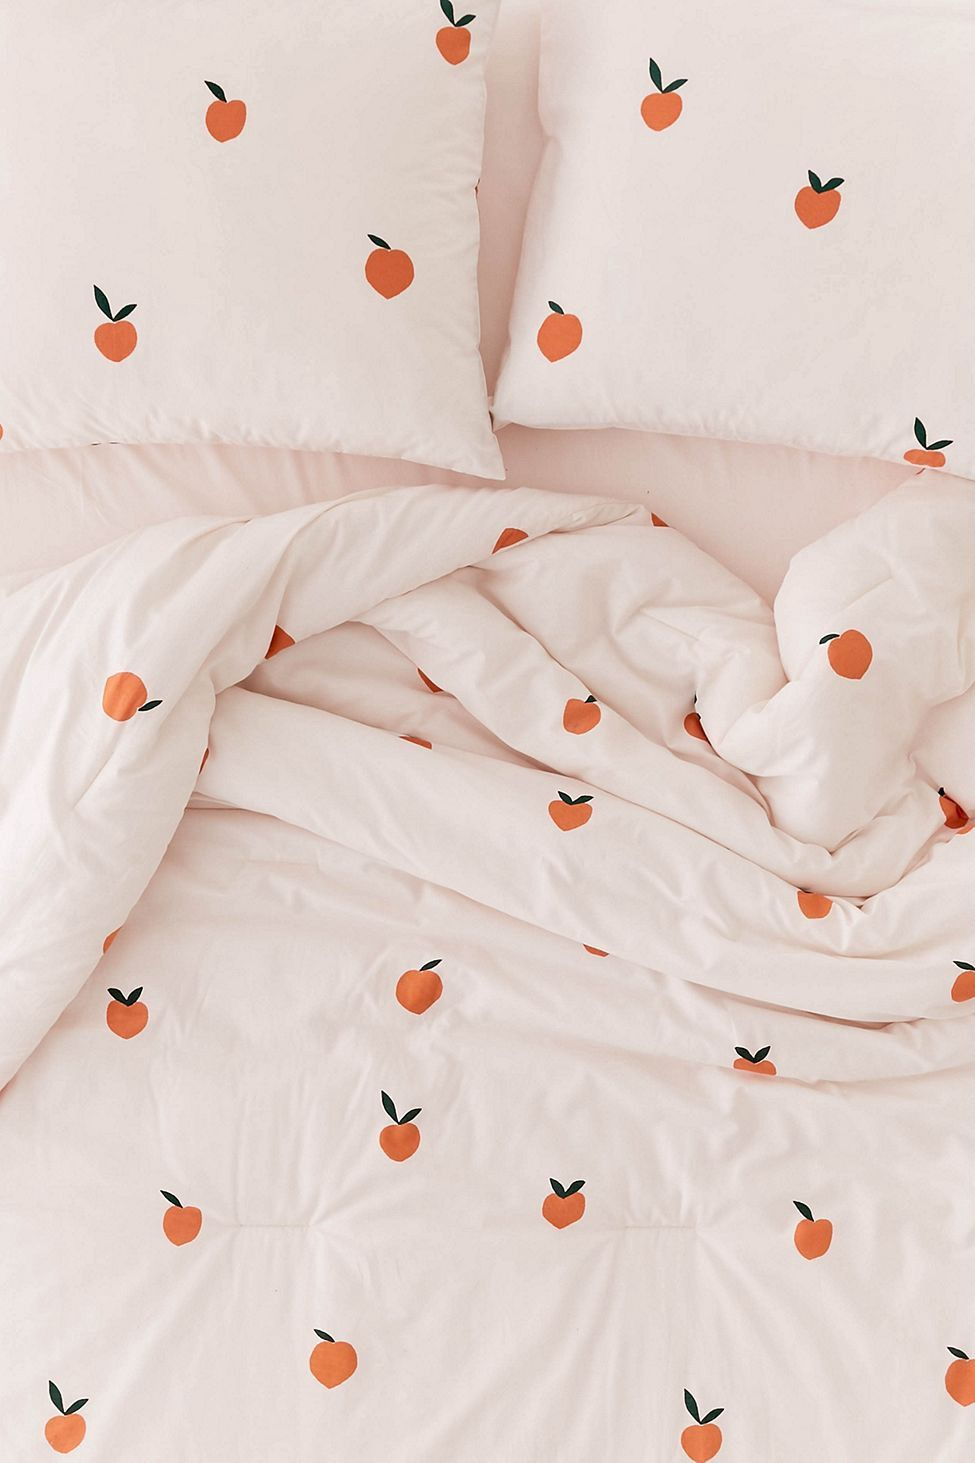 Urban Outfitters Peaches Comforter Snooze Set Twin Xl Bed Decor Aesthetic Bedroom